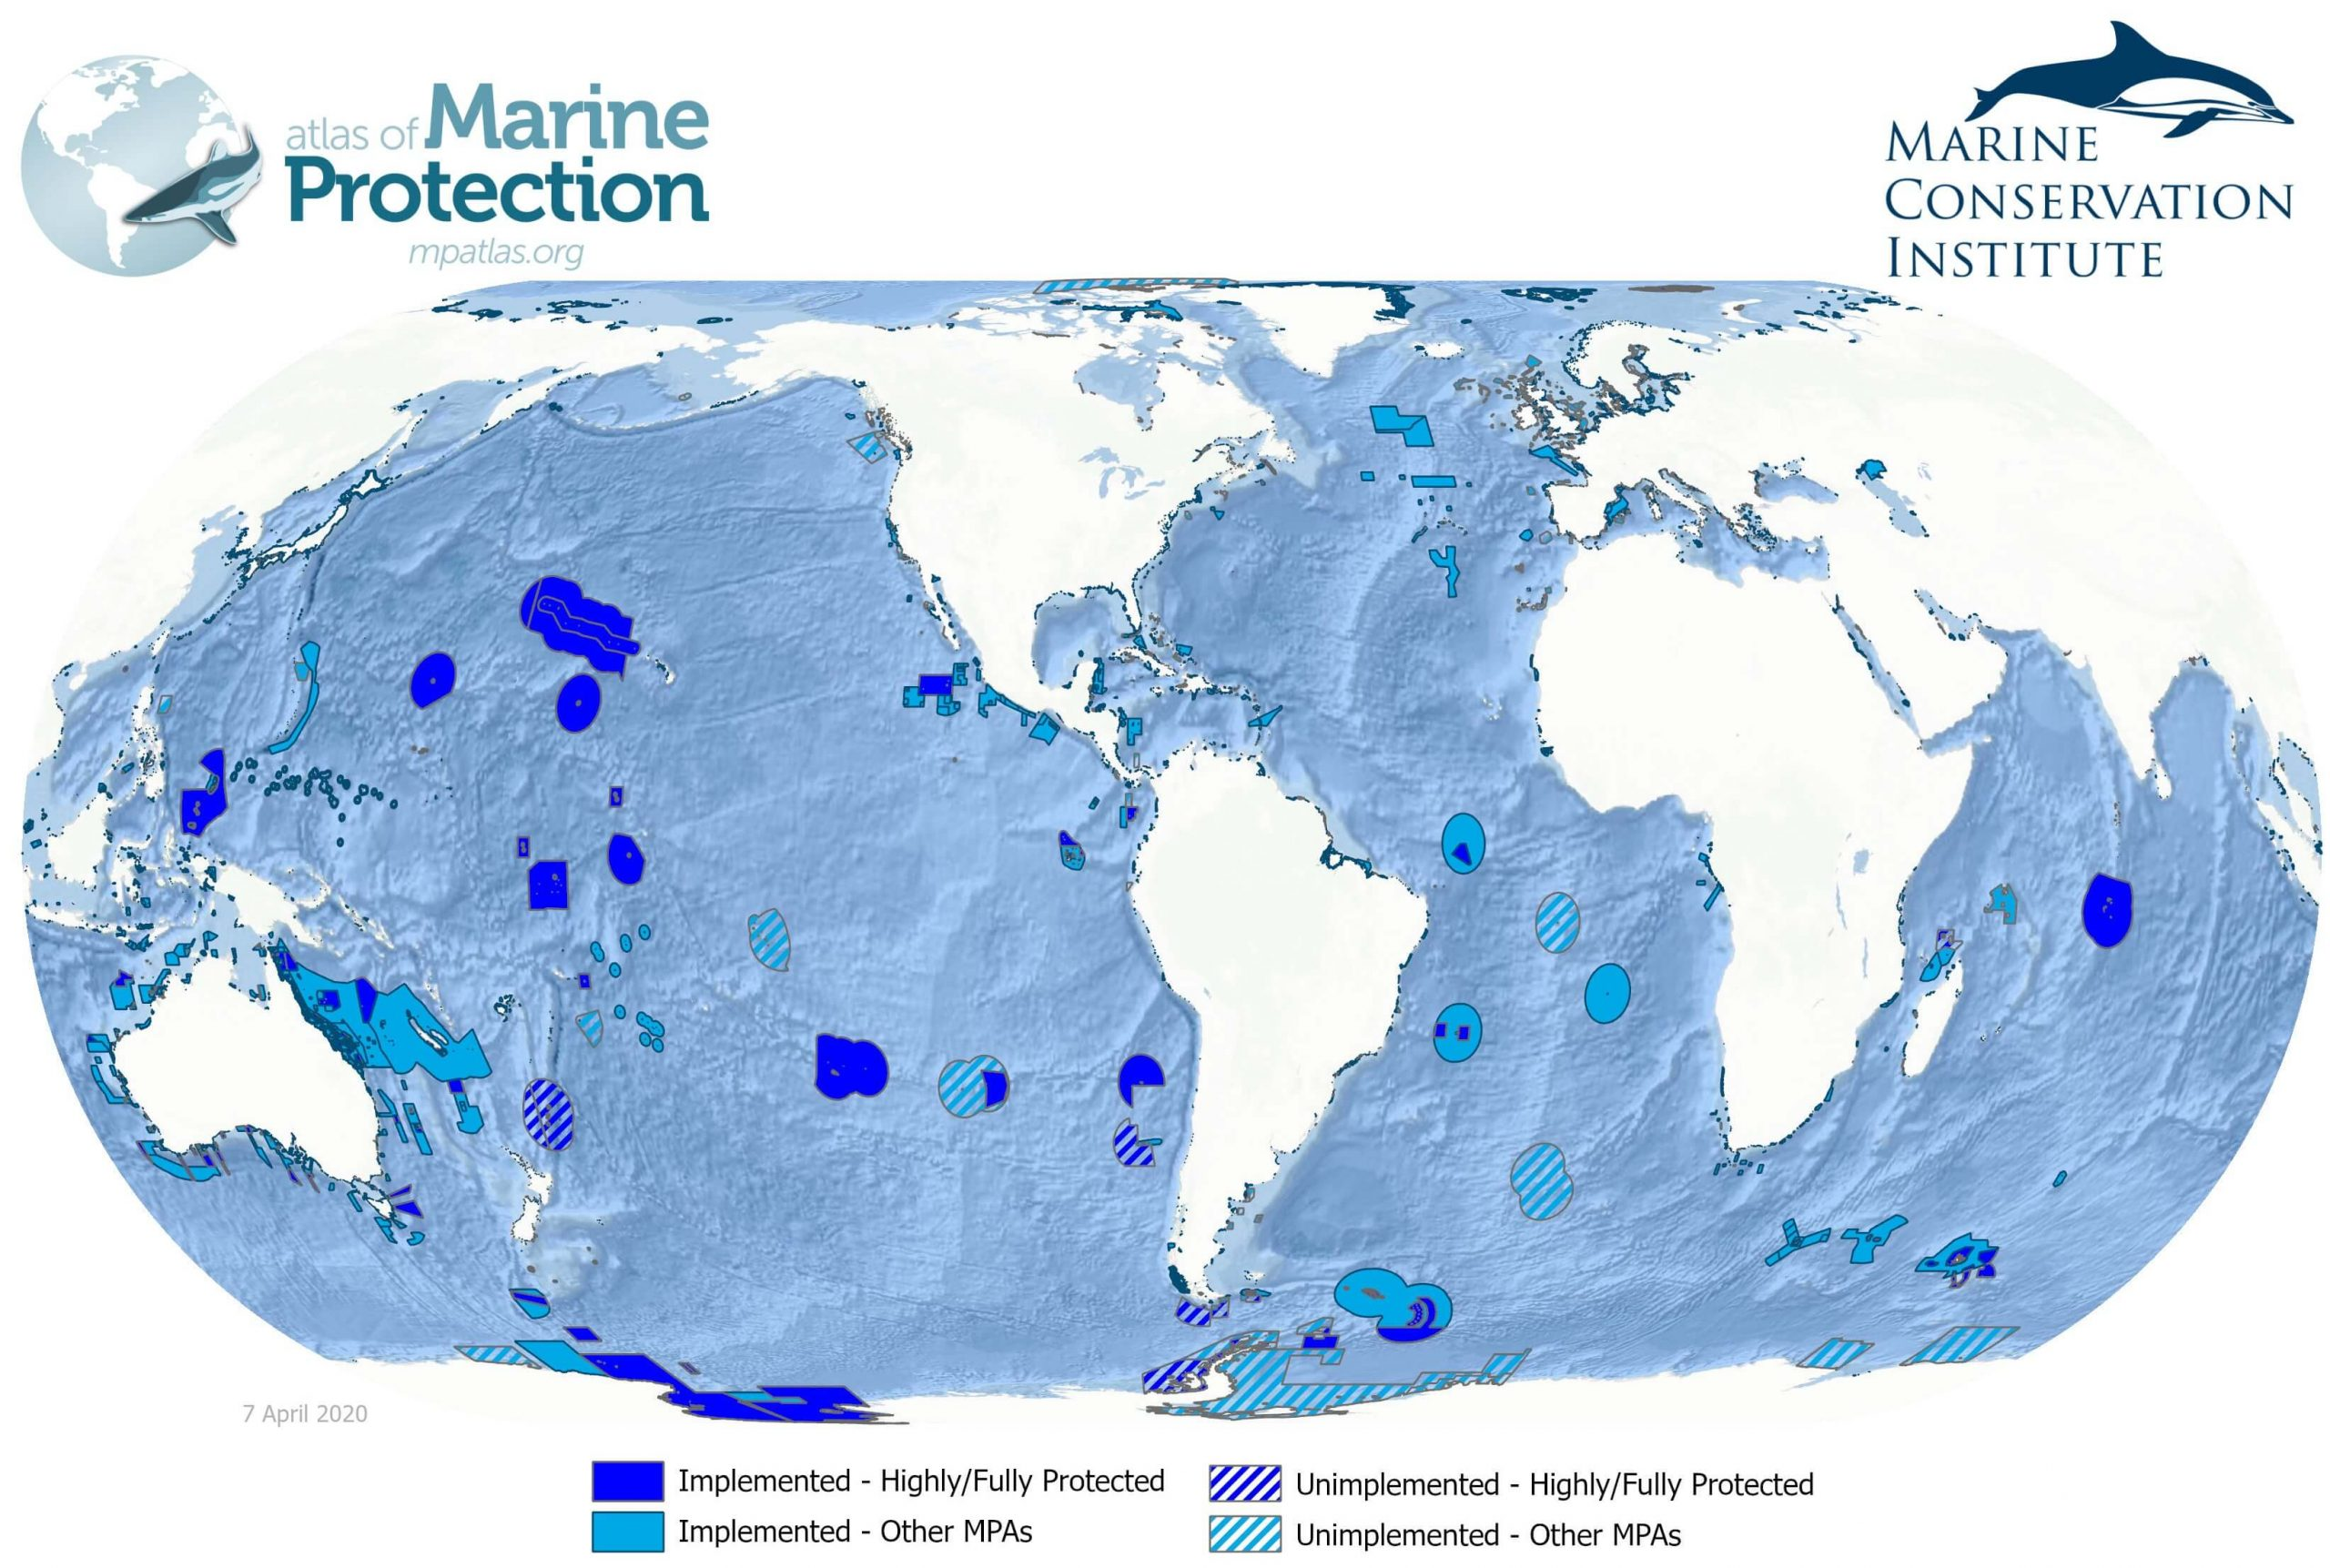 Map of Marine Protected Areas